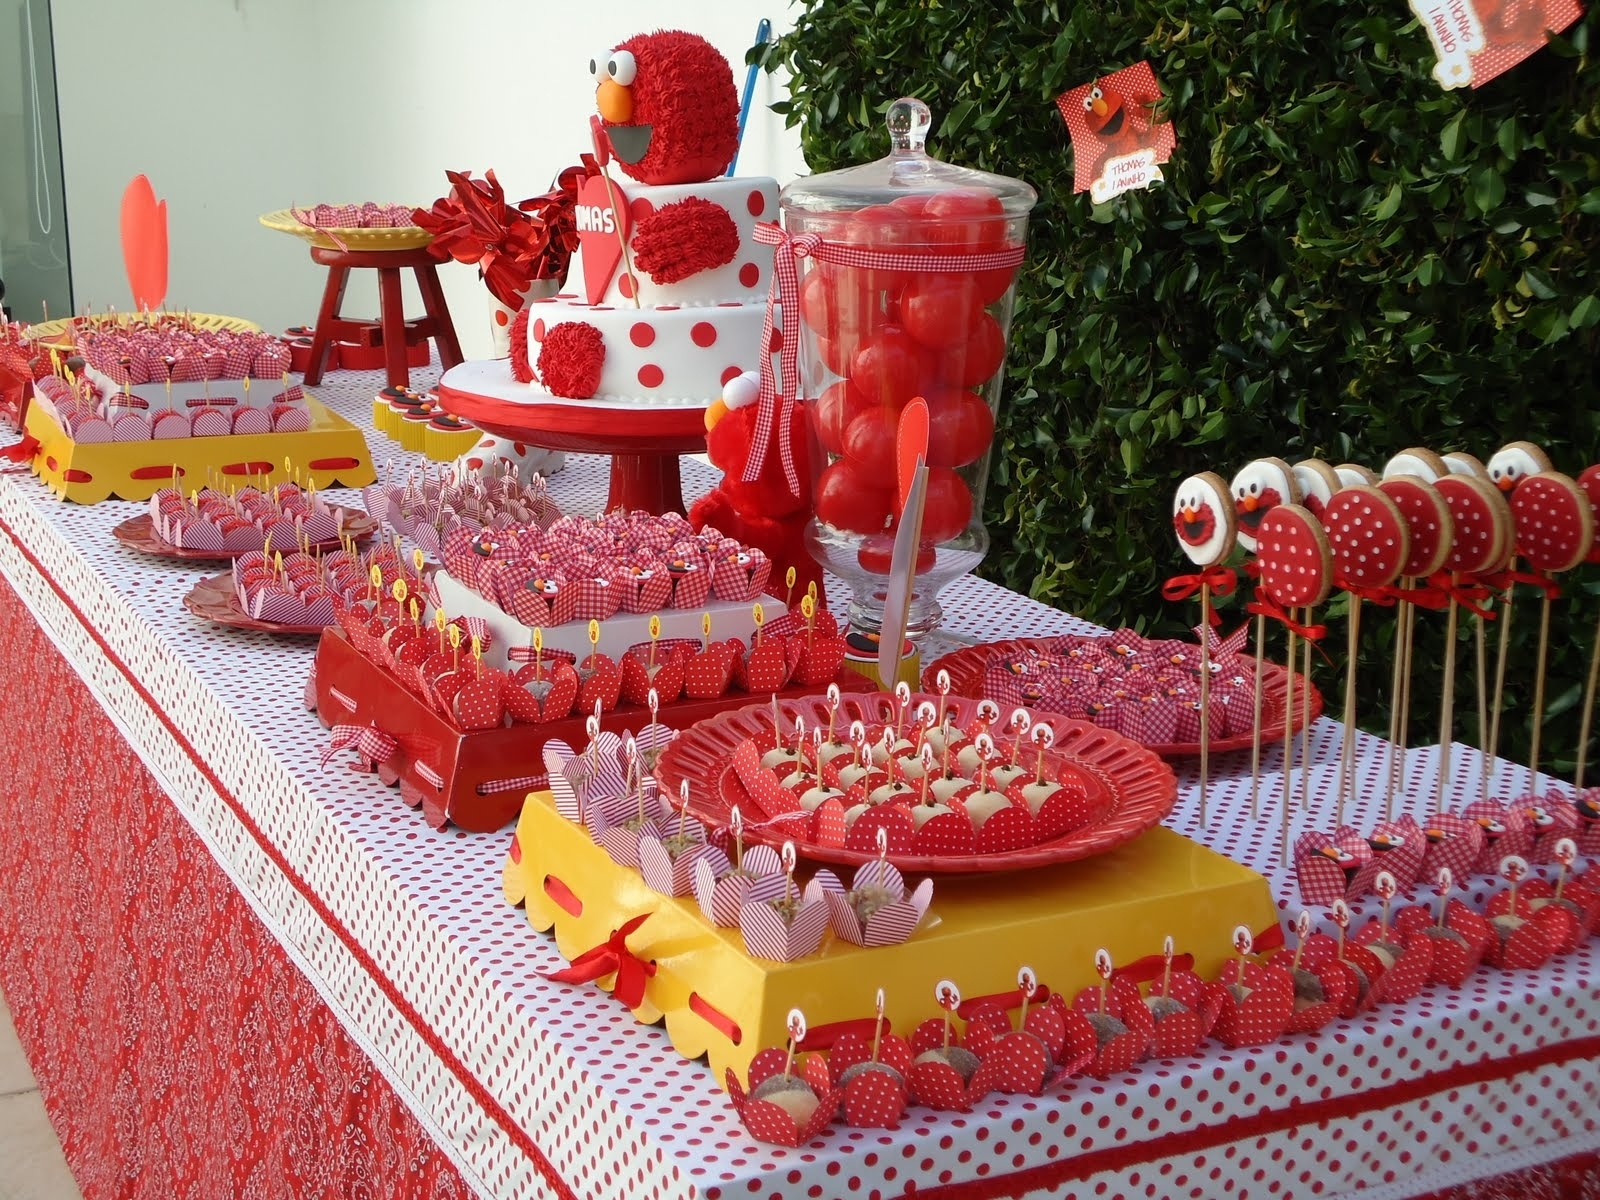 10 Nice Ideas For Kids Birthday Party %name 2021